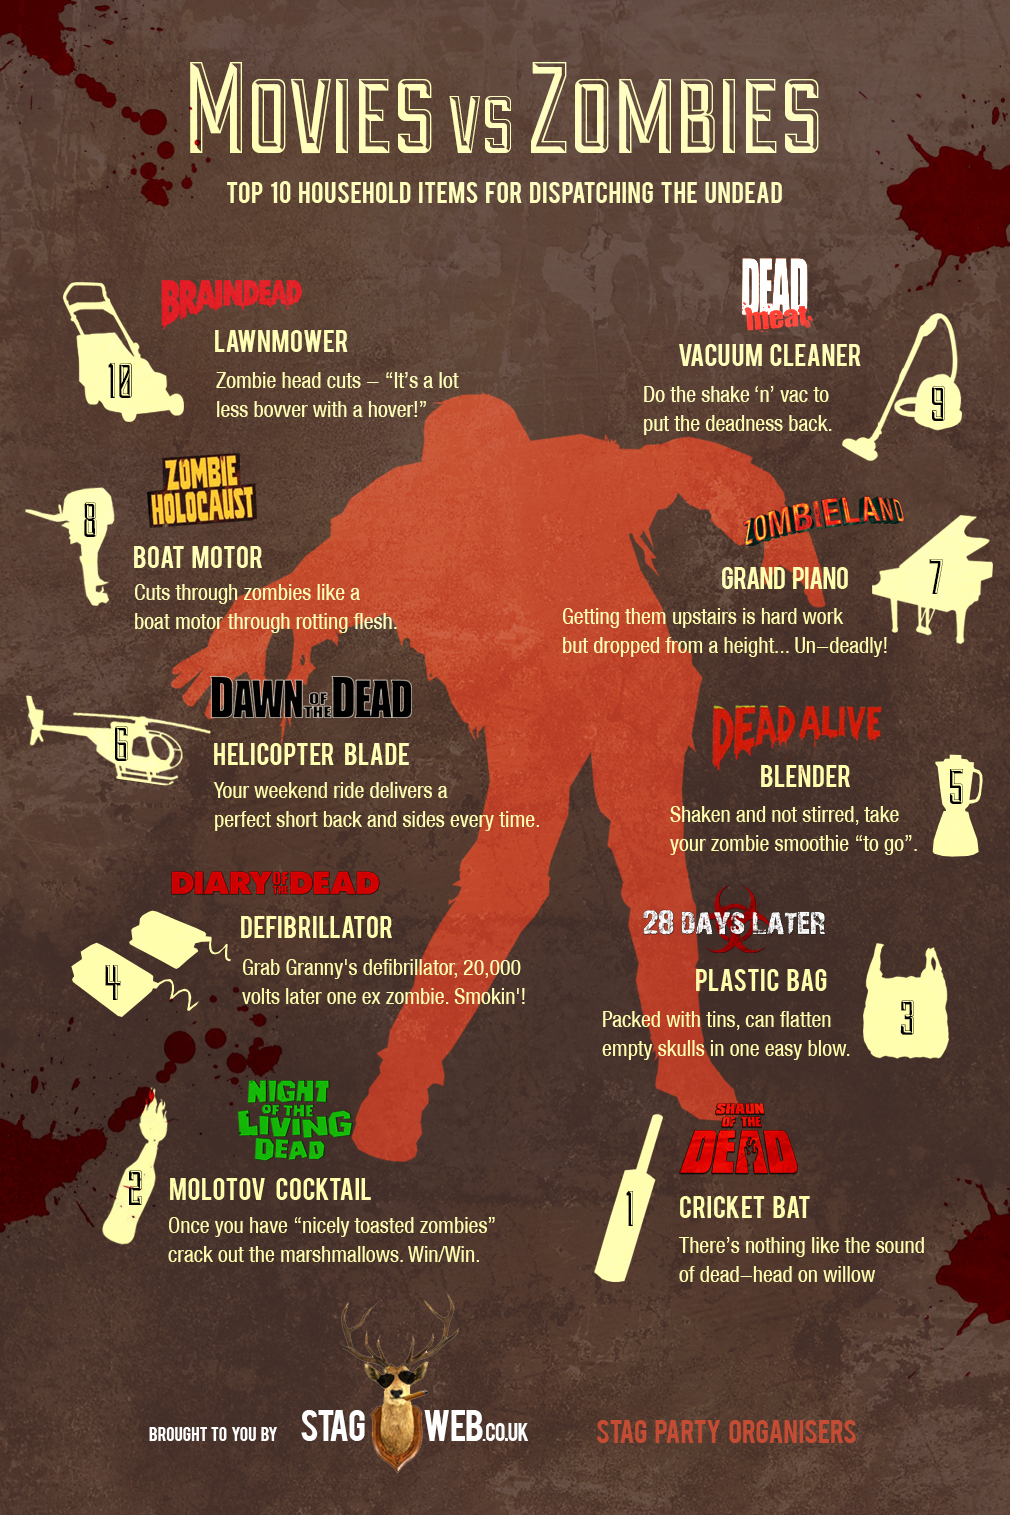 Zombies vs Movies infographic